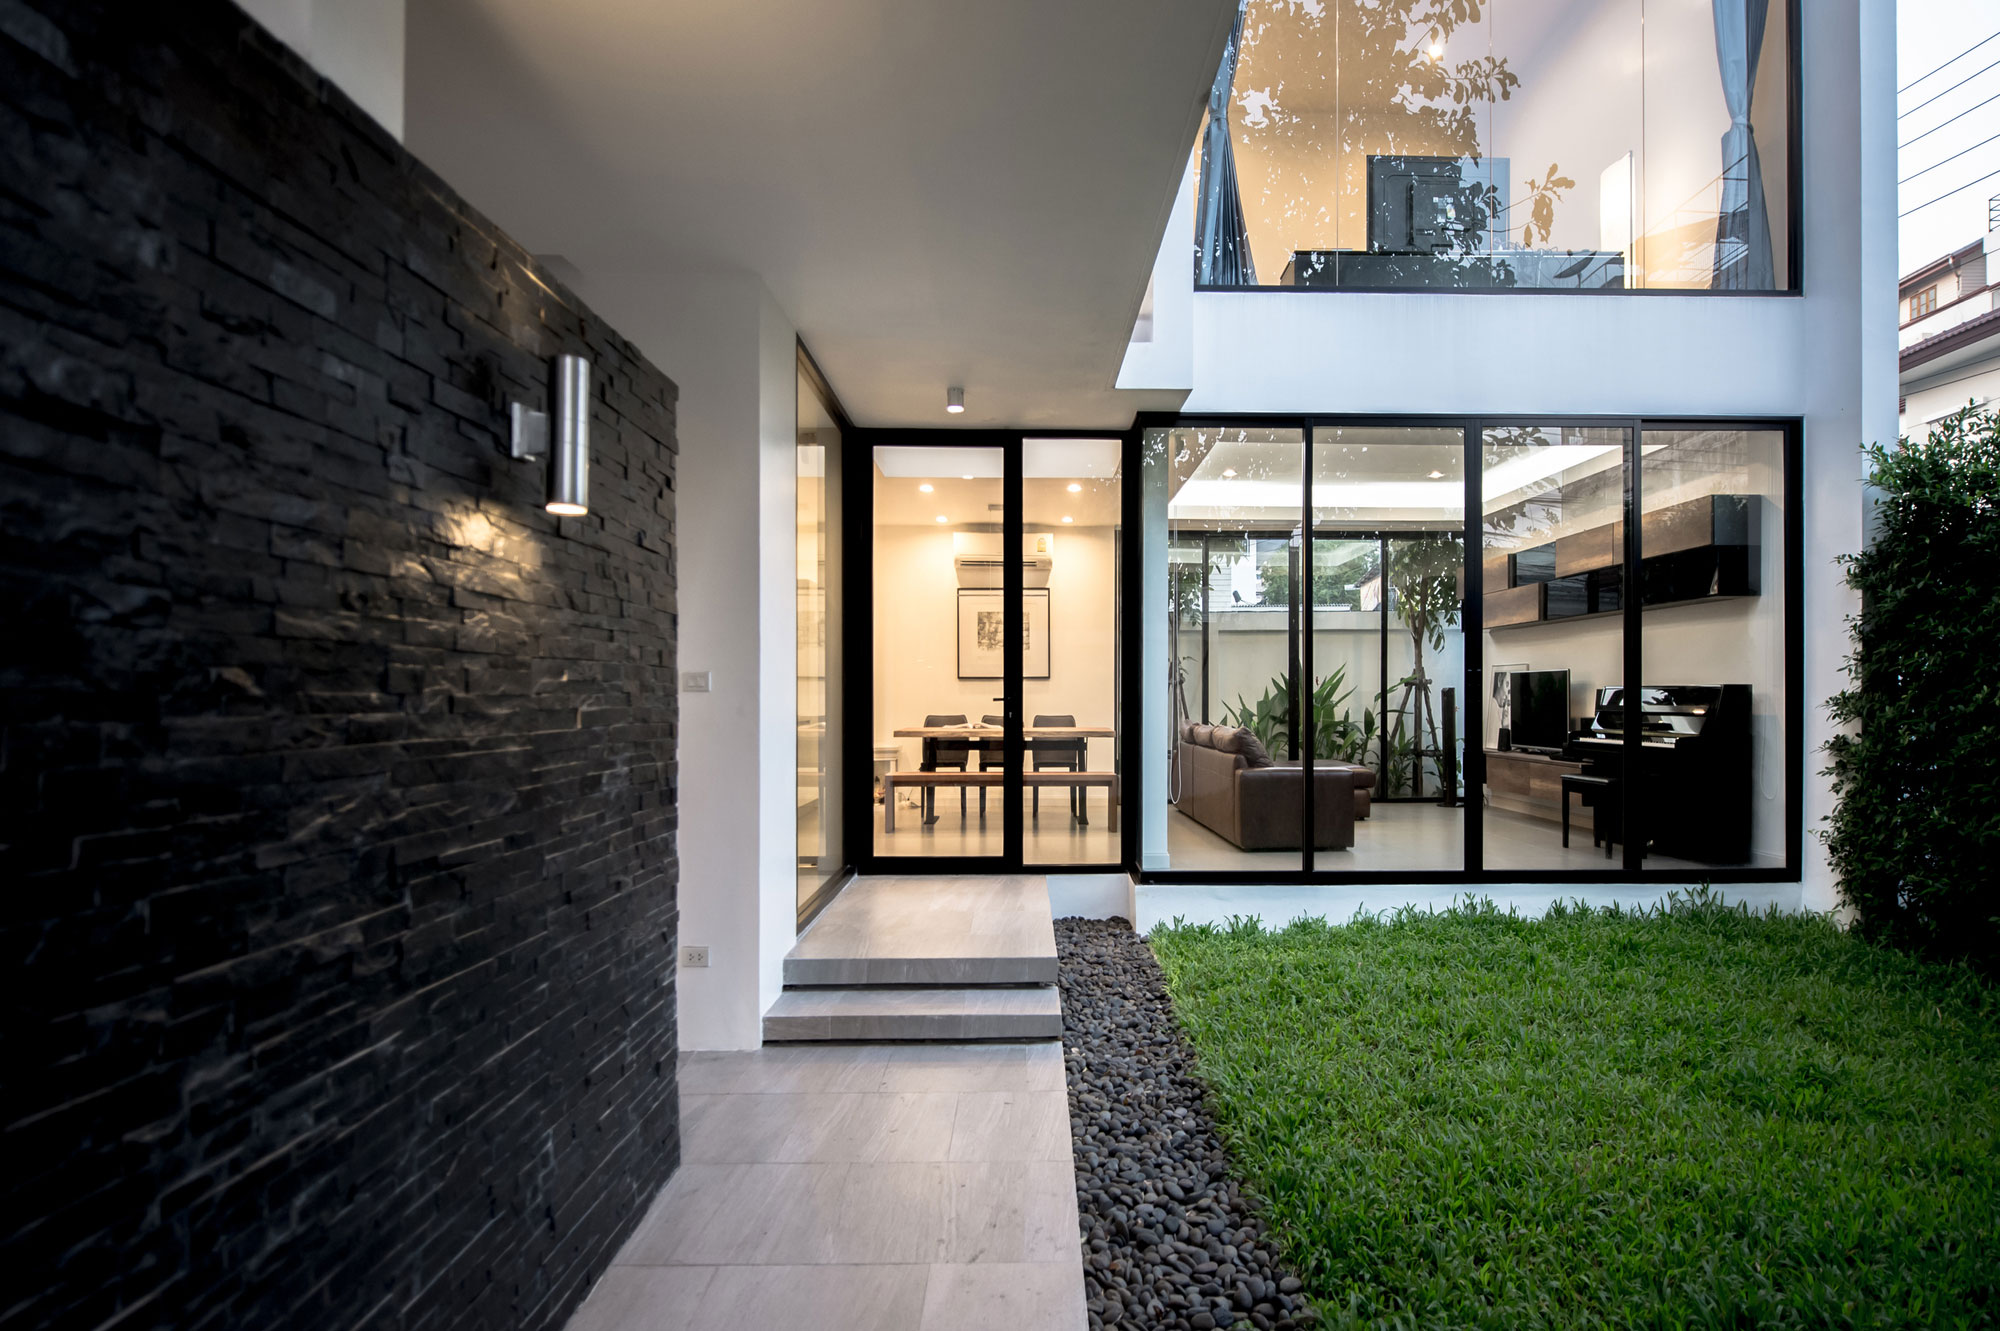 Thiti Ophatsodsa Designs a Contemporary Home in Bangkok